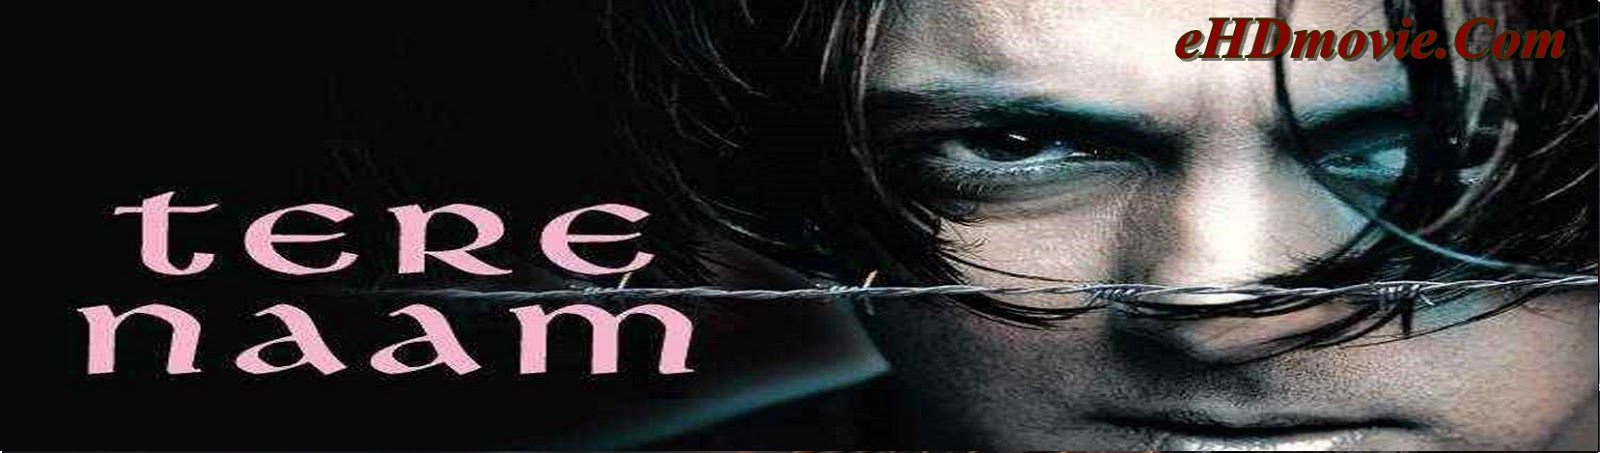 Tere Naam 2003 Full Movie Hindi 720p - 480p ORG BRRip 450MB - 1.4GB ESubs Free Download